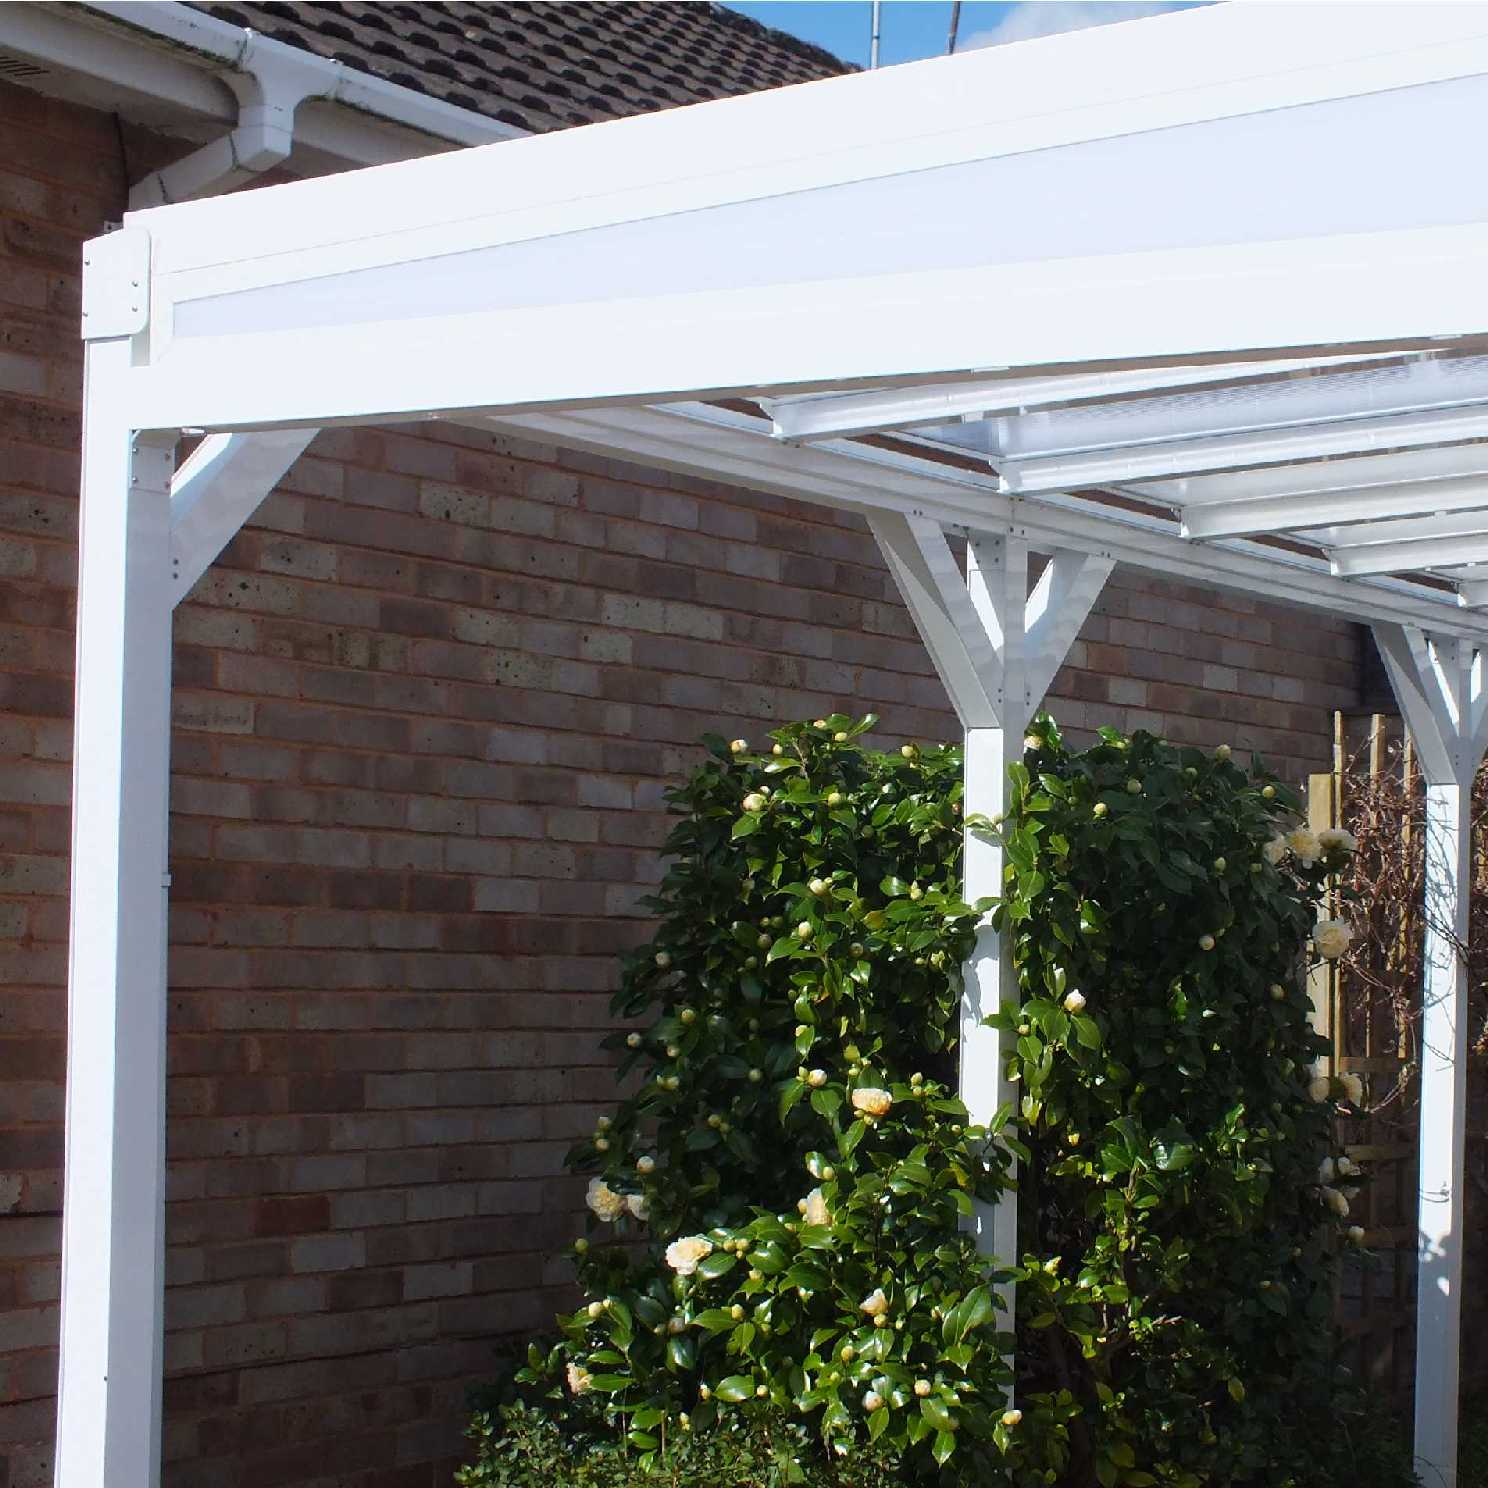 Omega Smart White Lean-To Canopy with 16mm Polycarbonate Glazing - 9.5m (W) x 1.5m (P), (5) Supporting Posts from Omega Build